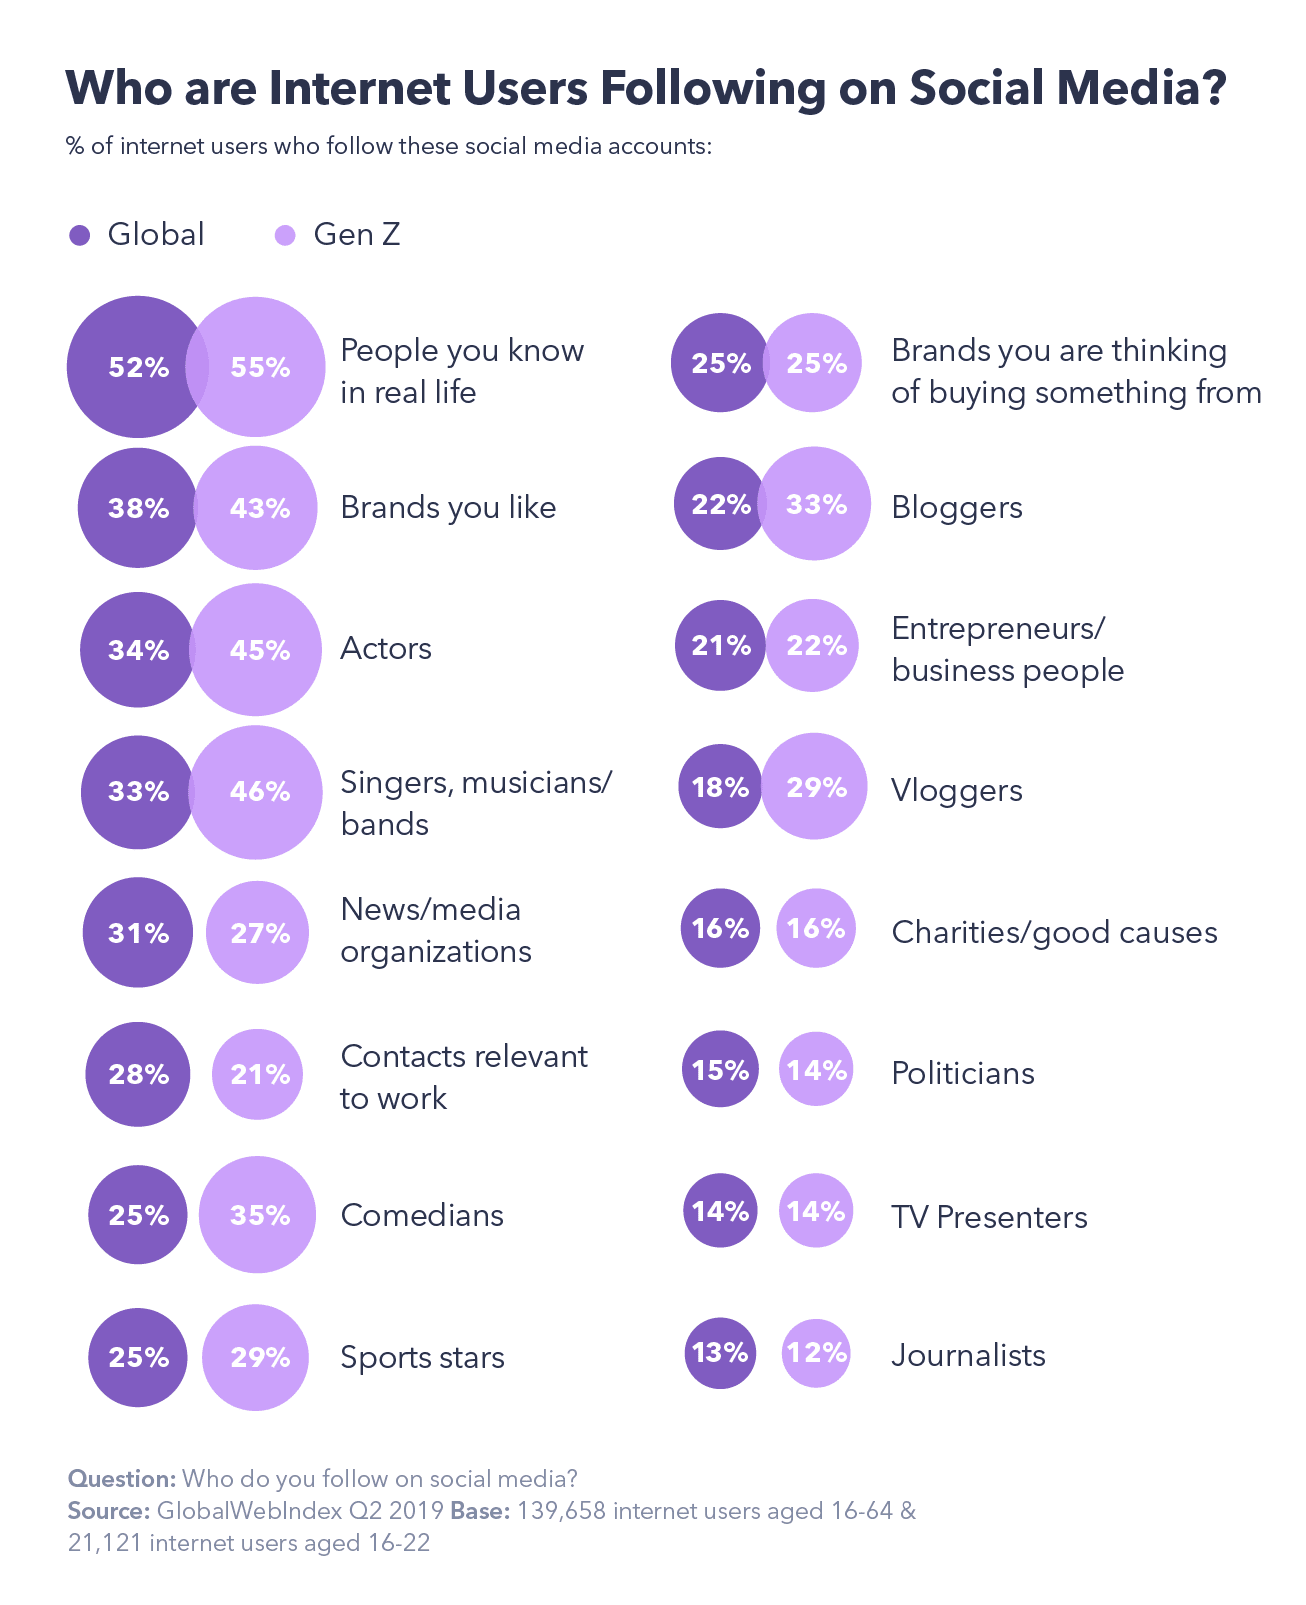 Who are internet users are following on social media